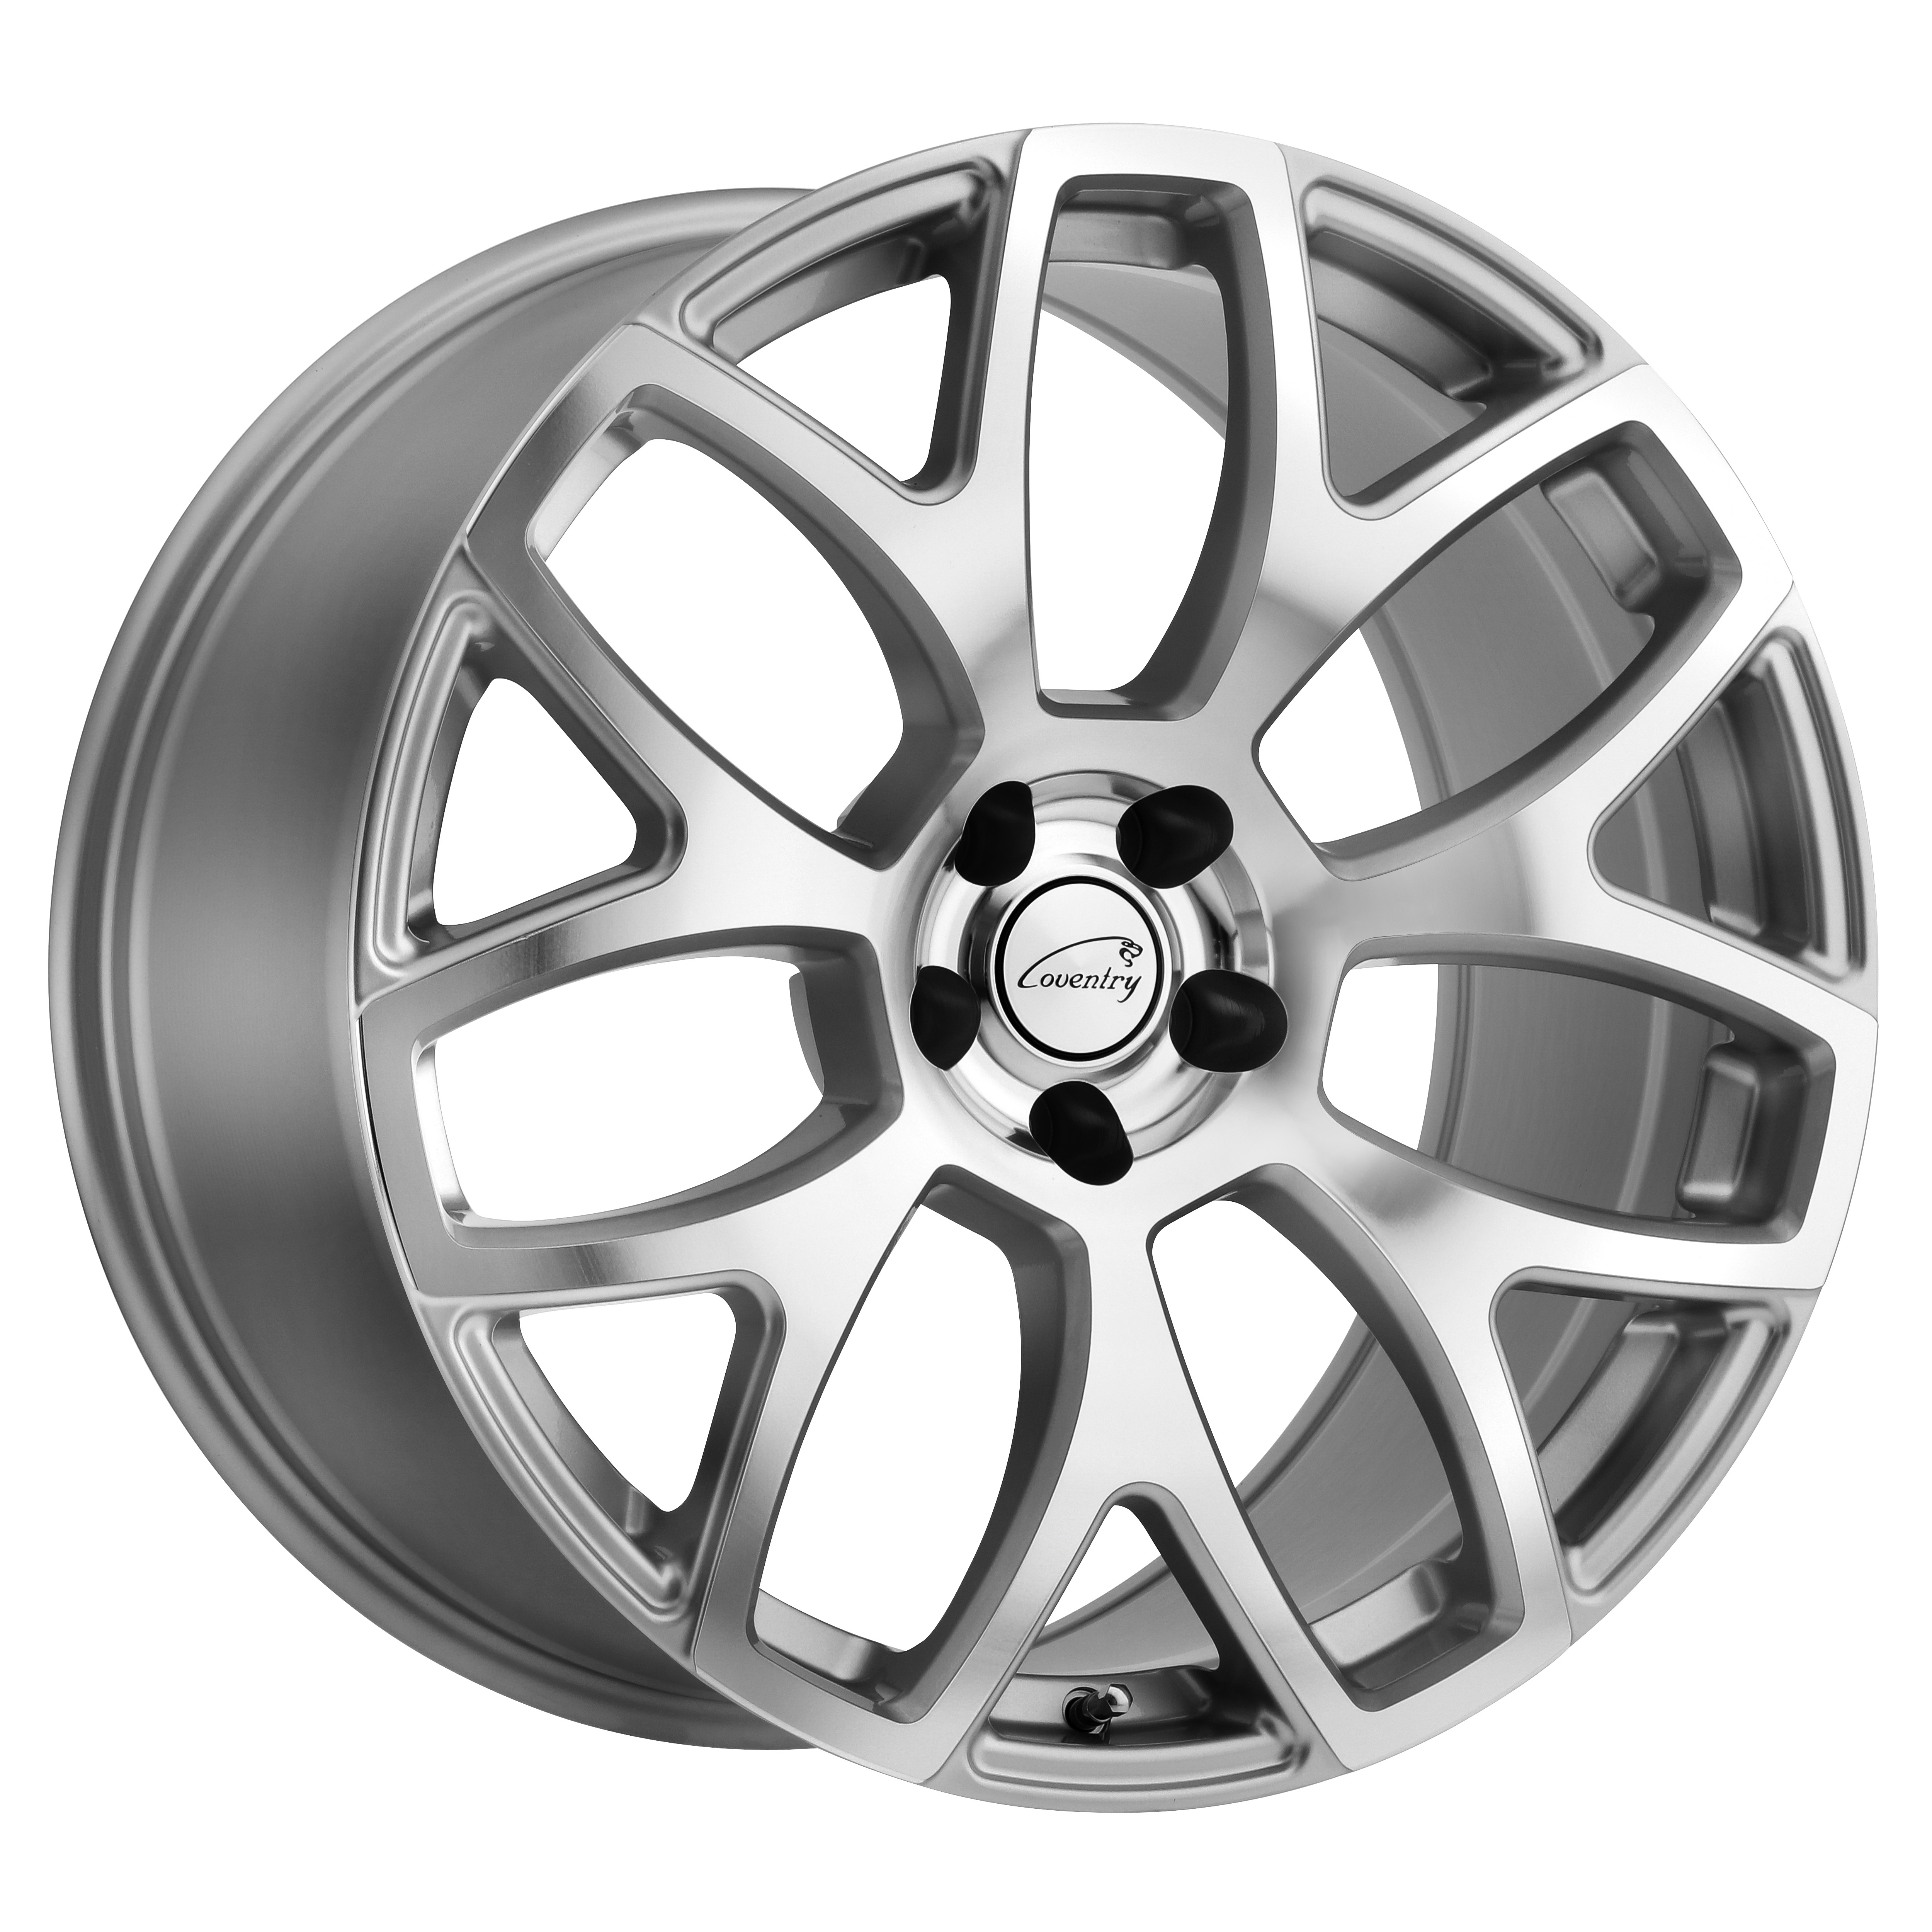 alloy wheels rims p sport xe jaguar maxx and of tyres xf with black dunlop set venom wheel